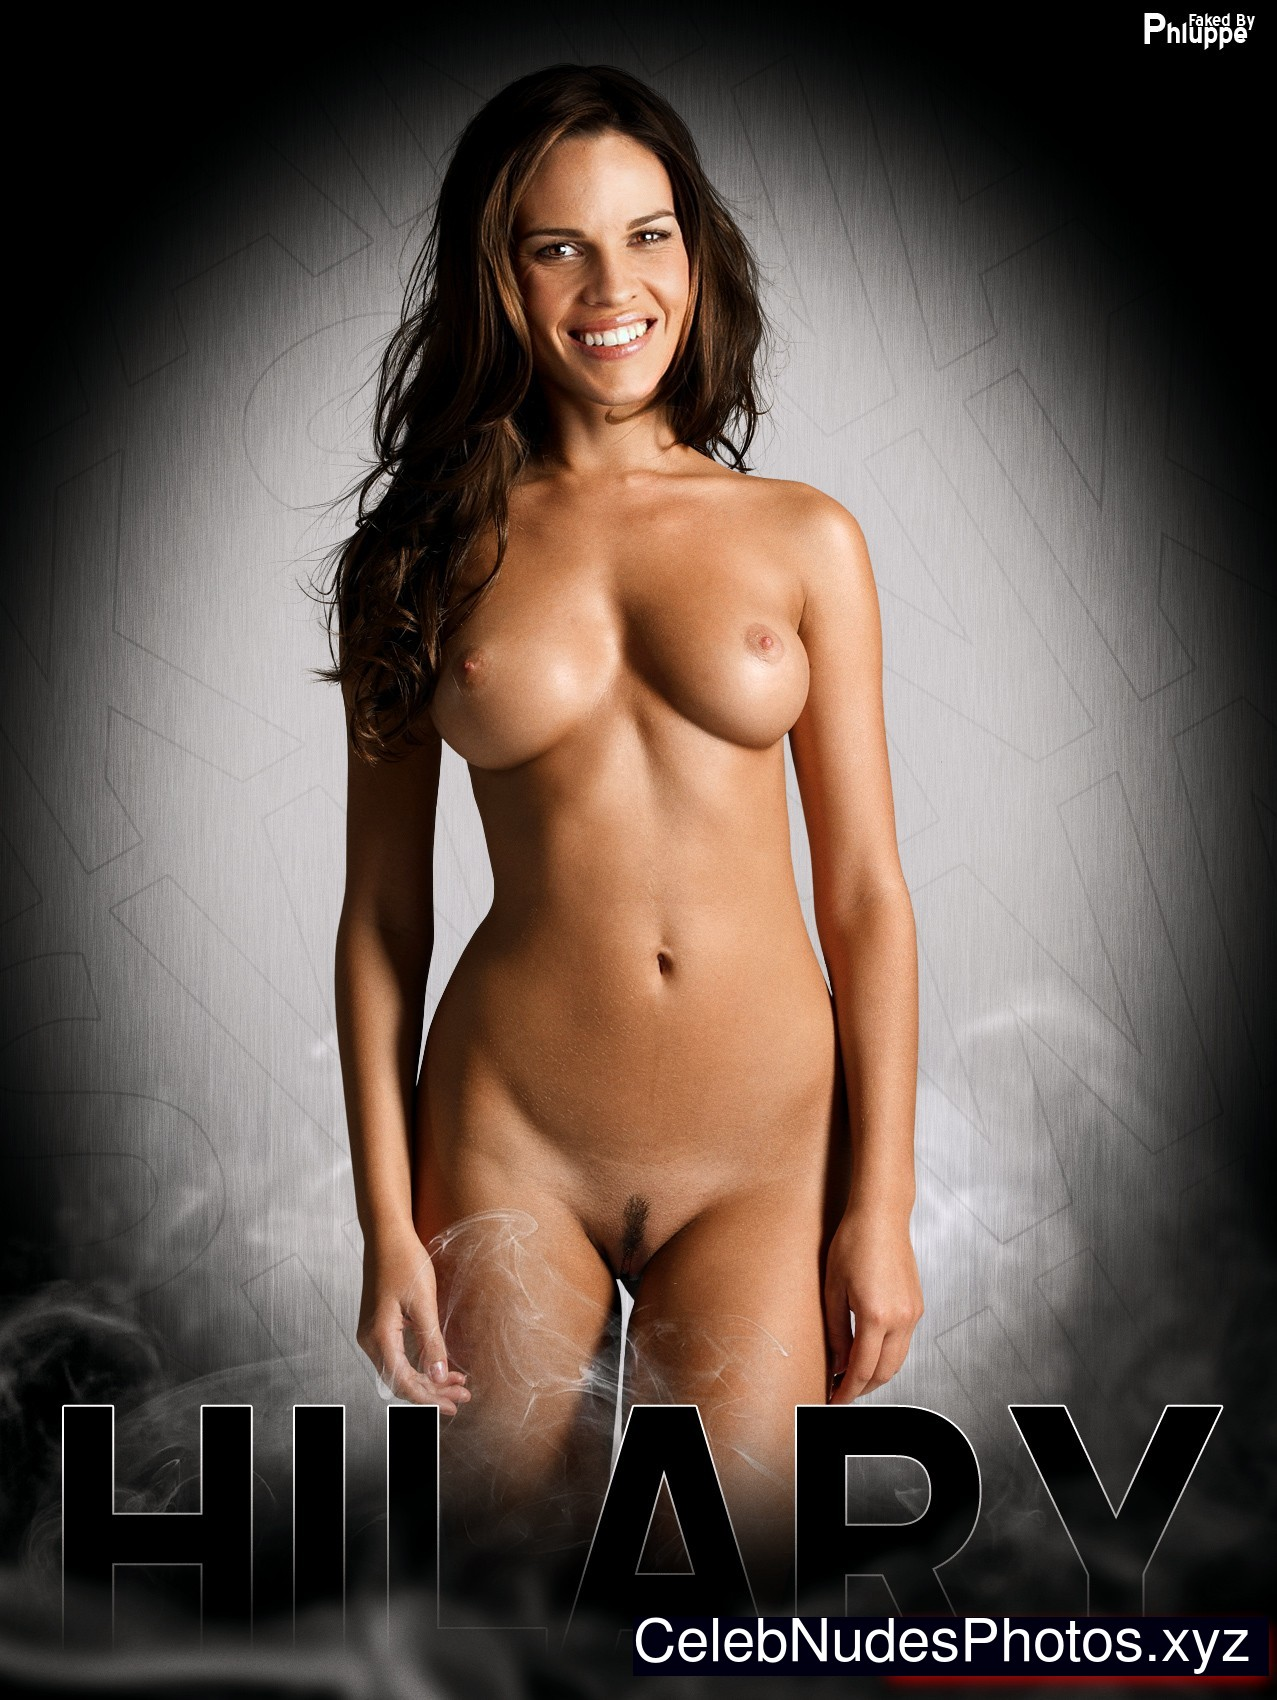 Think, hilary swank hairy porn pictures can